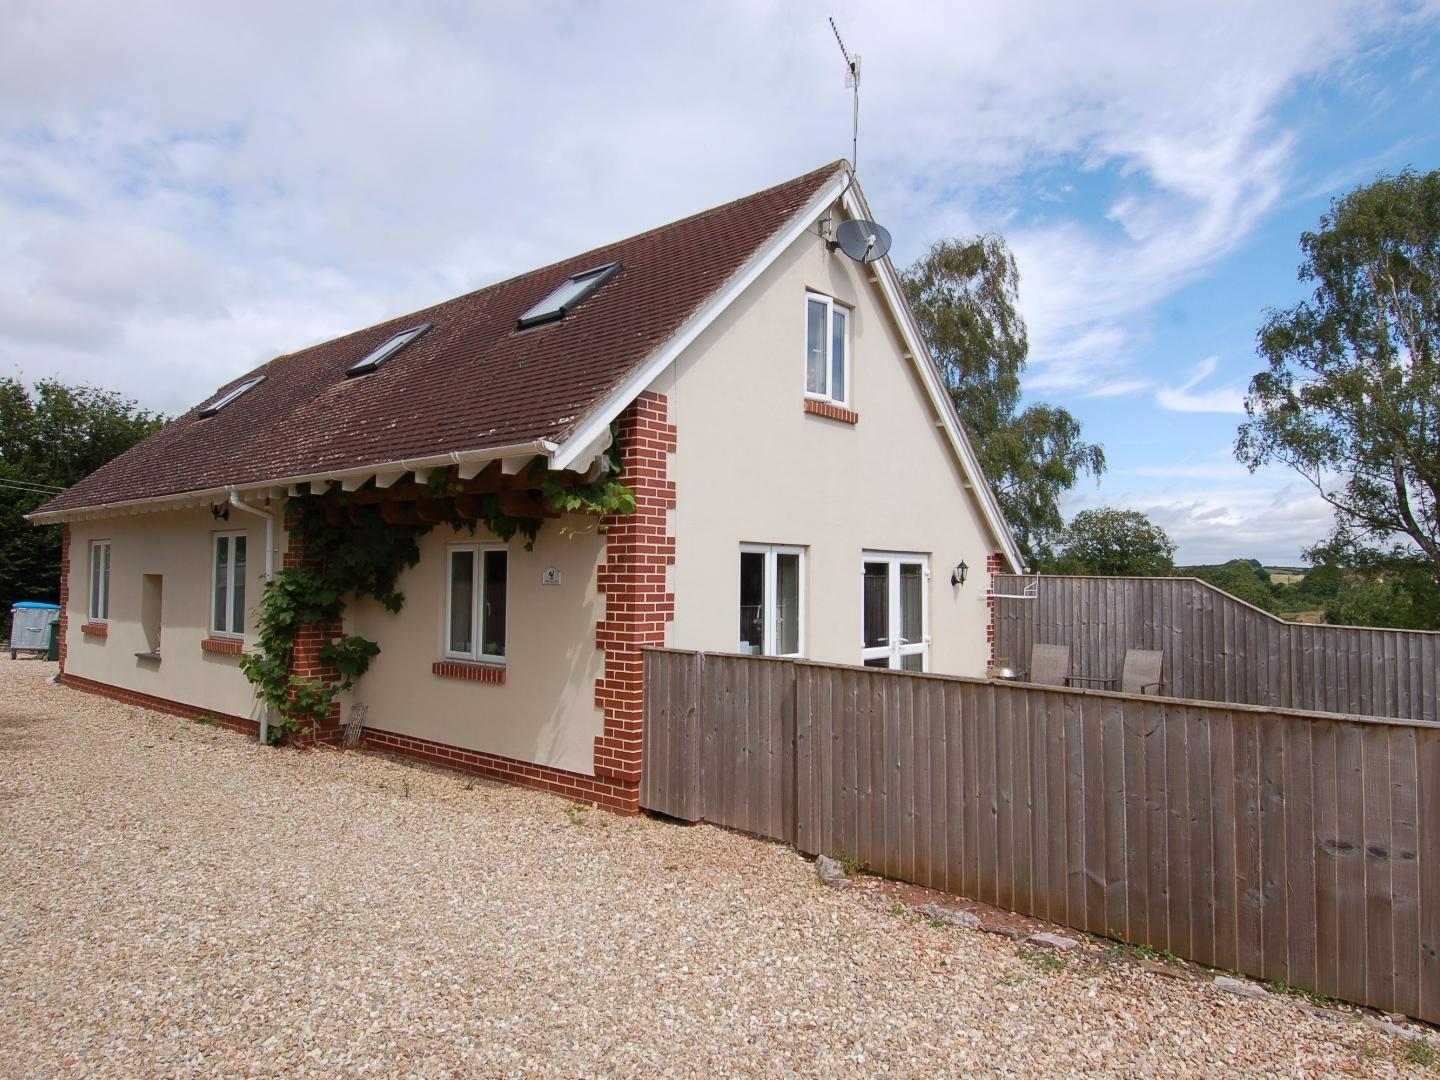 1 bedroom Cottage for rent in Dawlish